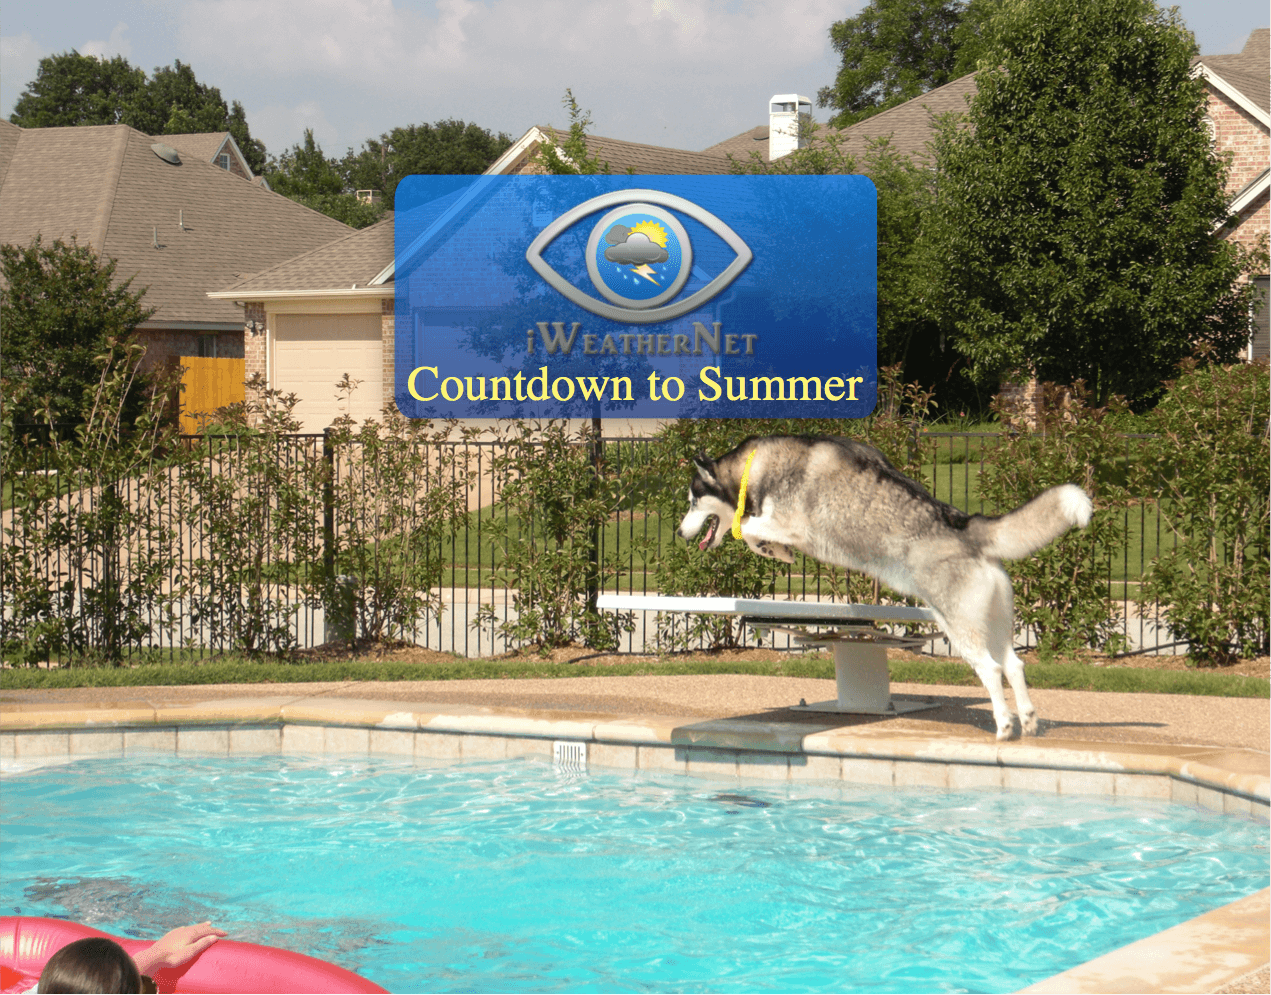 How Many Days Until Summer 2017? — iWeatherNet